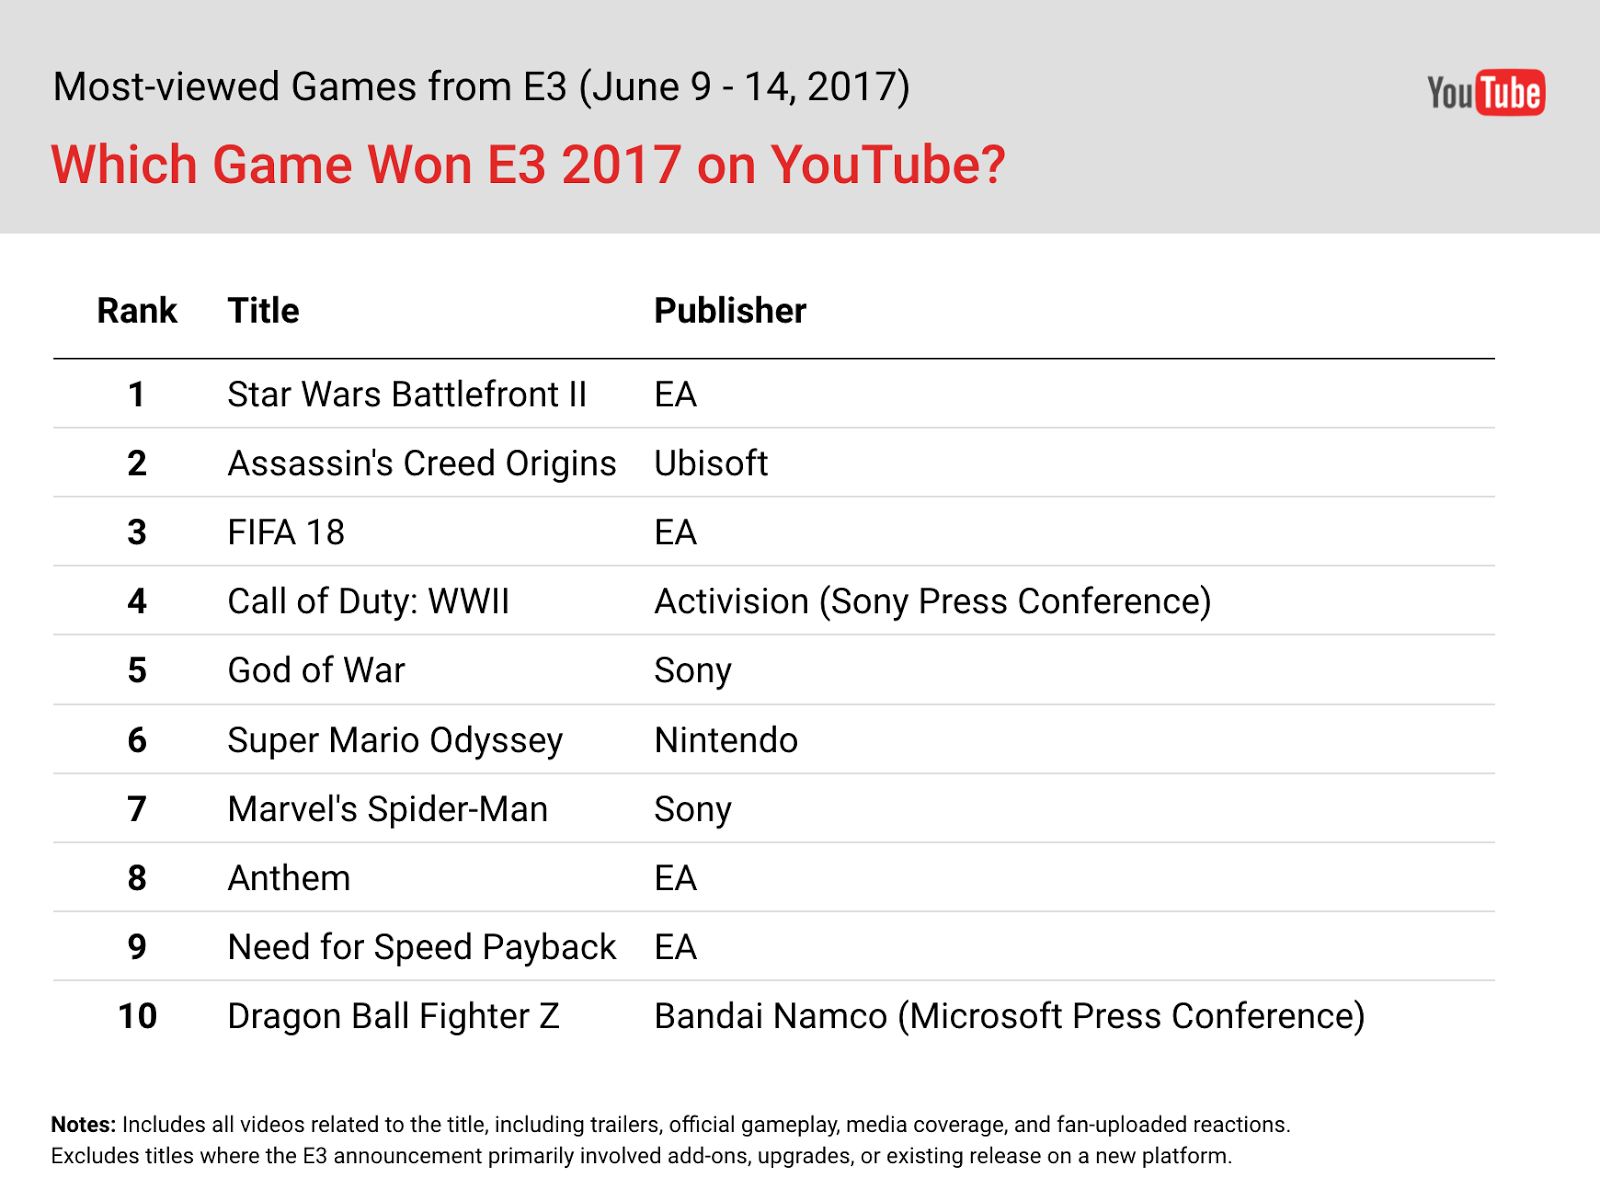 Star Wars Battlefront 2 had more views on YouTube than any other title during E3 2017